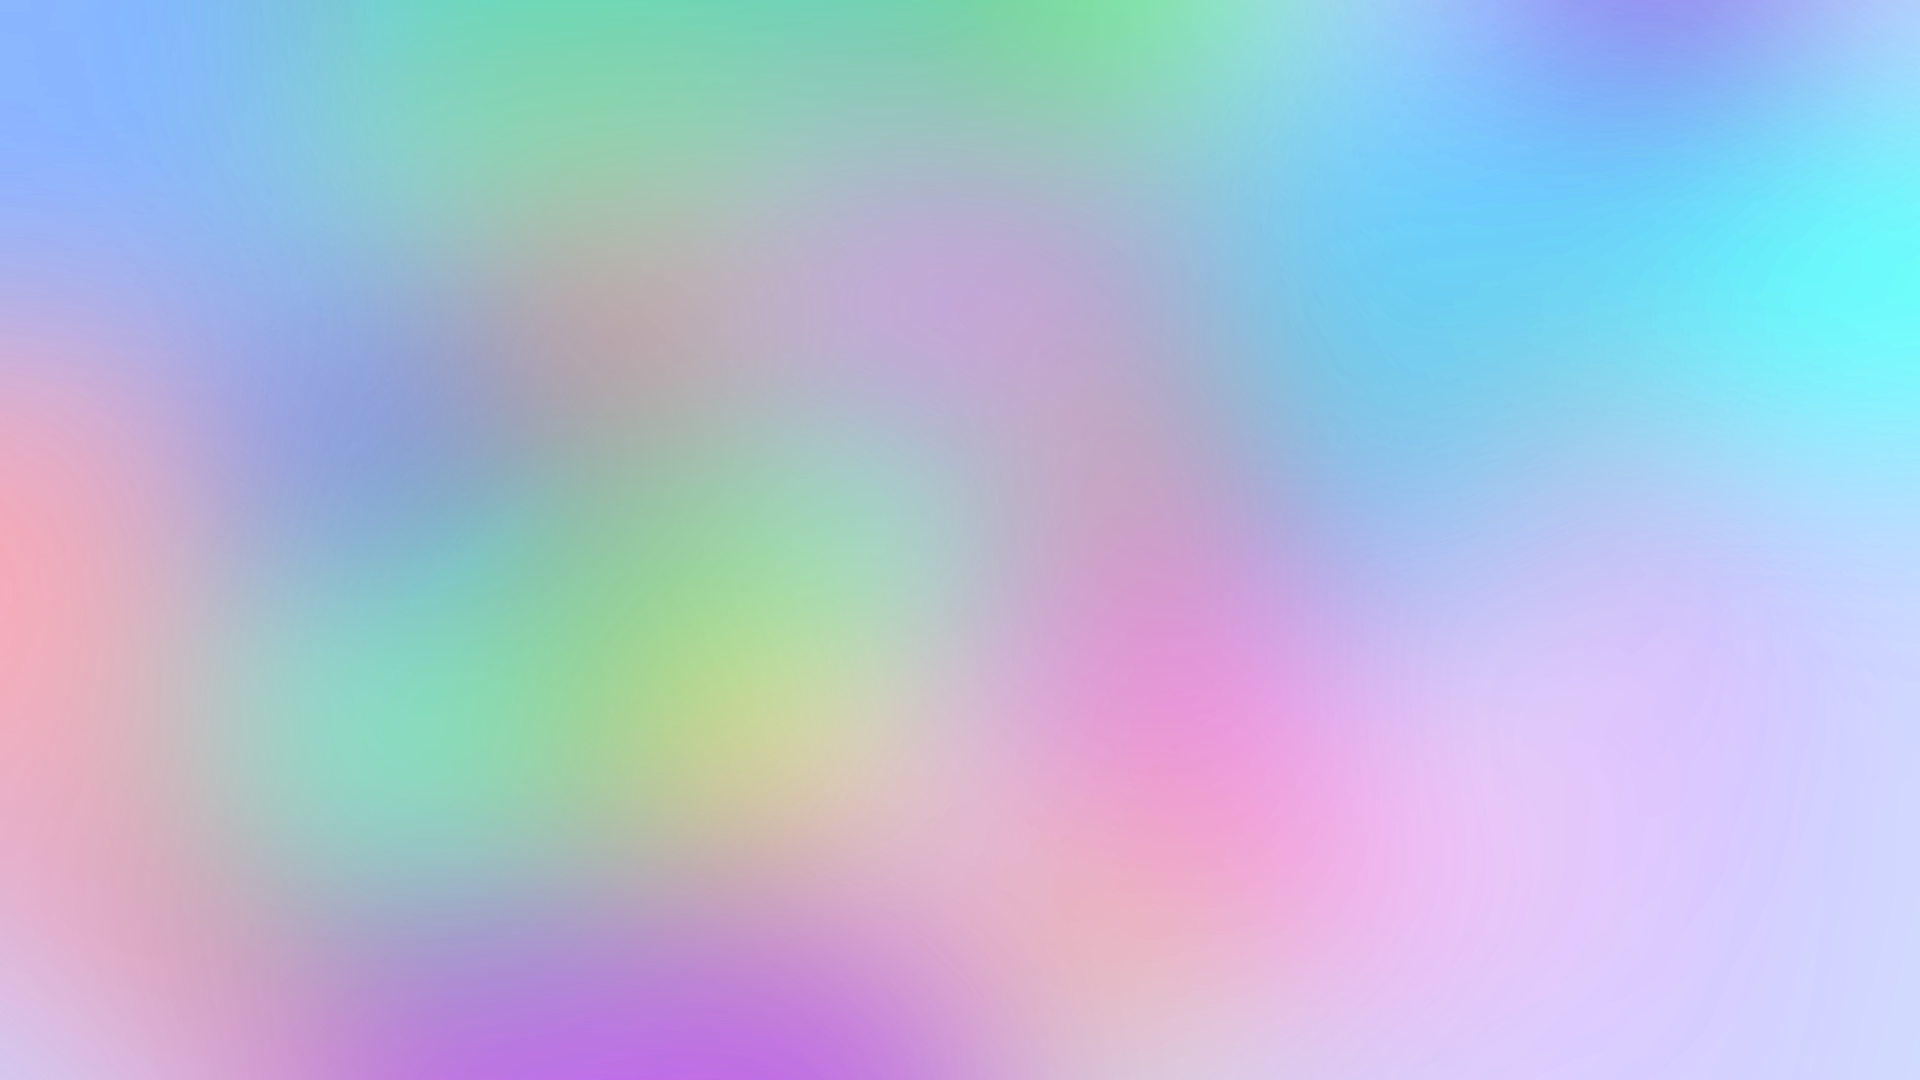 My Pastel Wallpaper By Sonyrootkit Png 70558